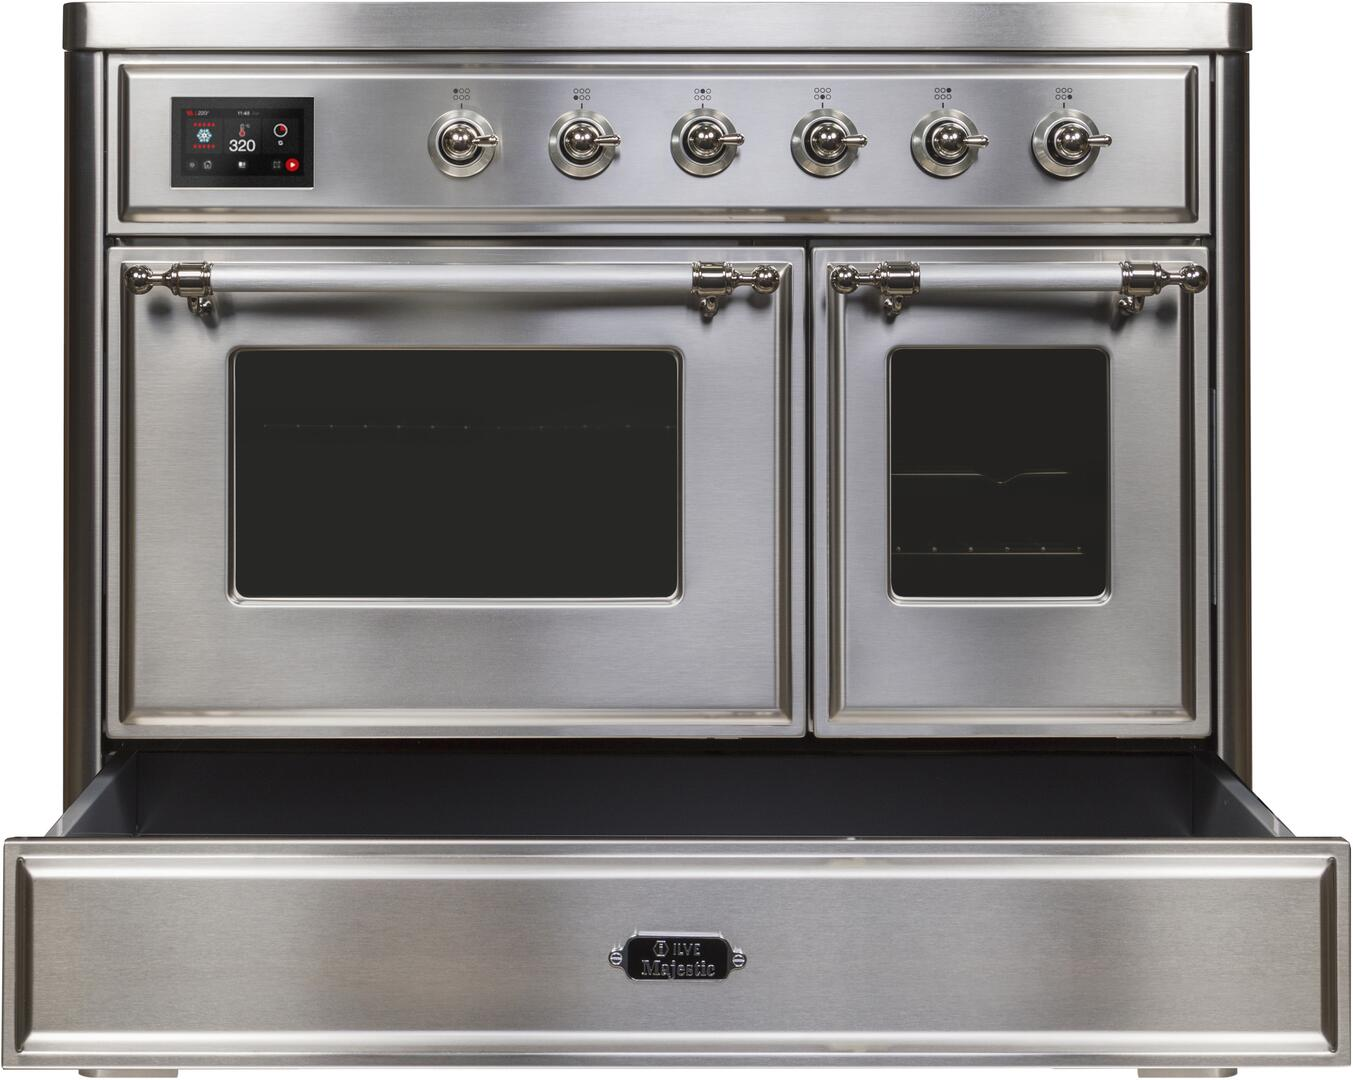 Ilve Majestic II UMDI10NS3SSC Freestanding Electric Range Stainless Steel, UMDI10NS3SSC-Front-CD-OS